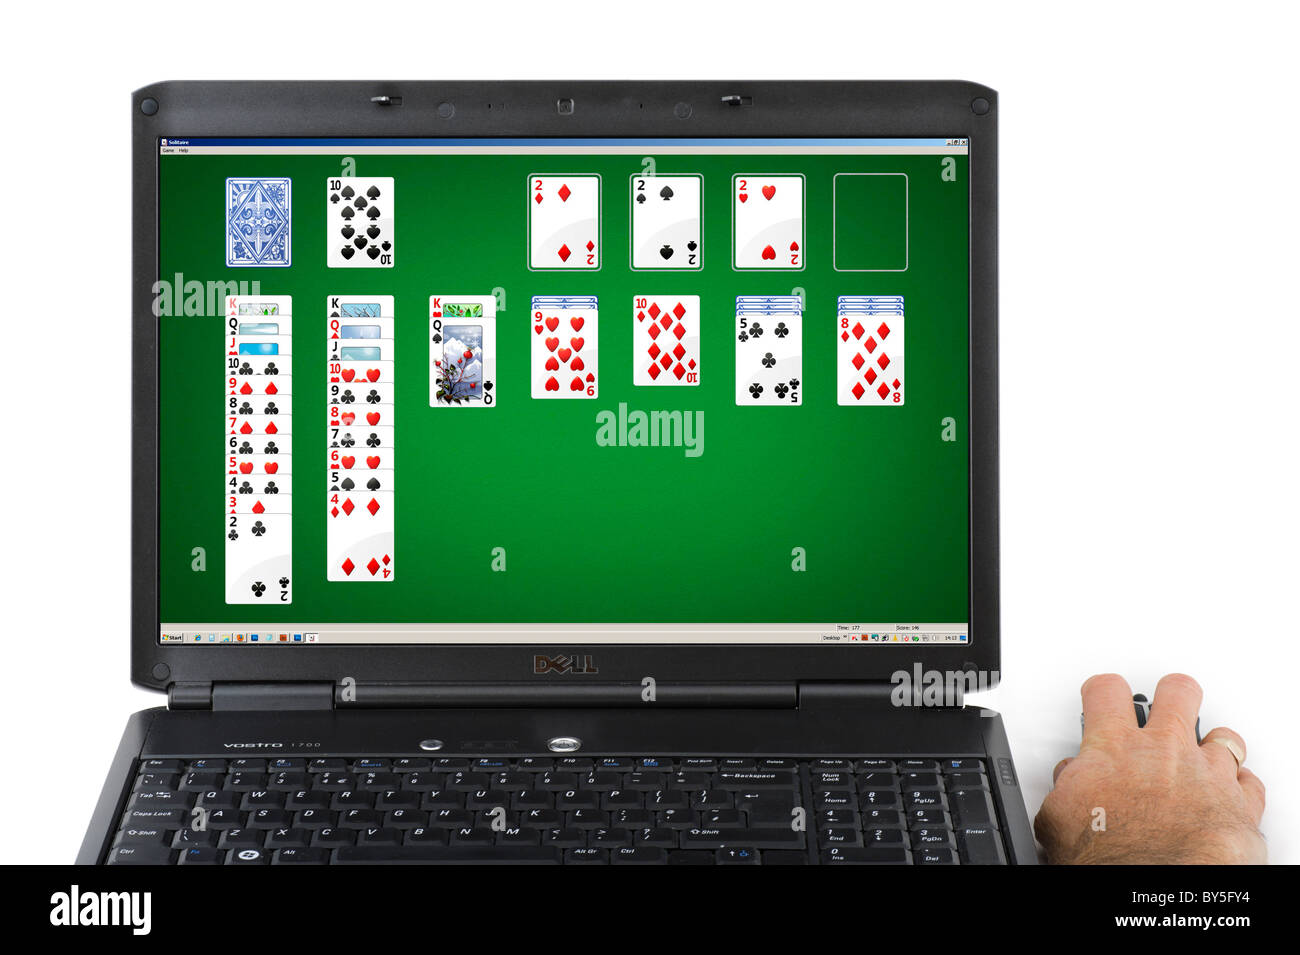 Playing Solitaire in Microsoft Windows7 - Stock Image